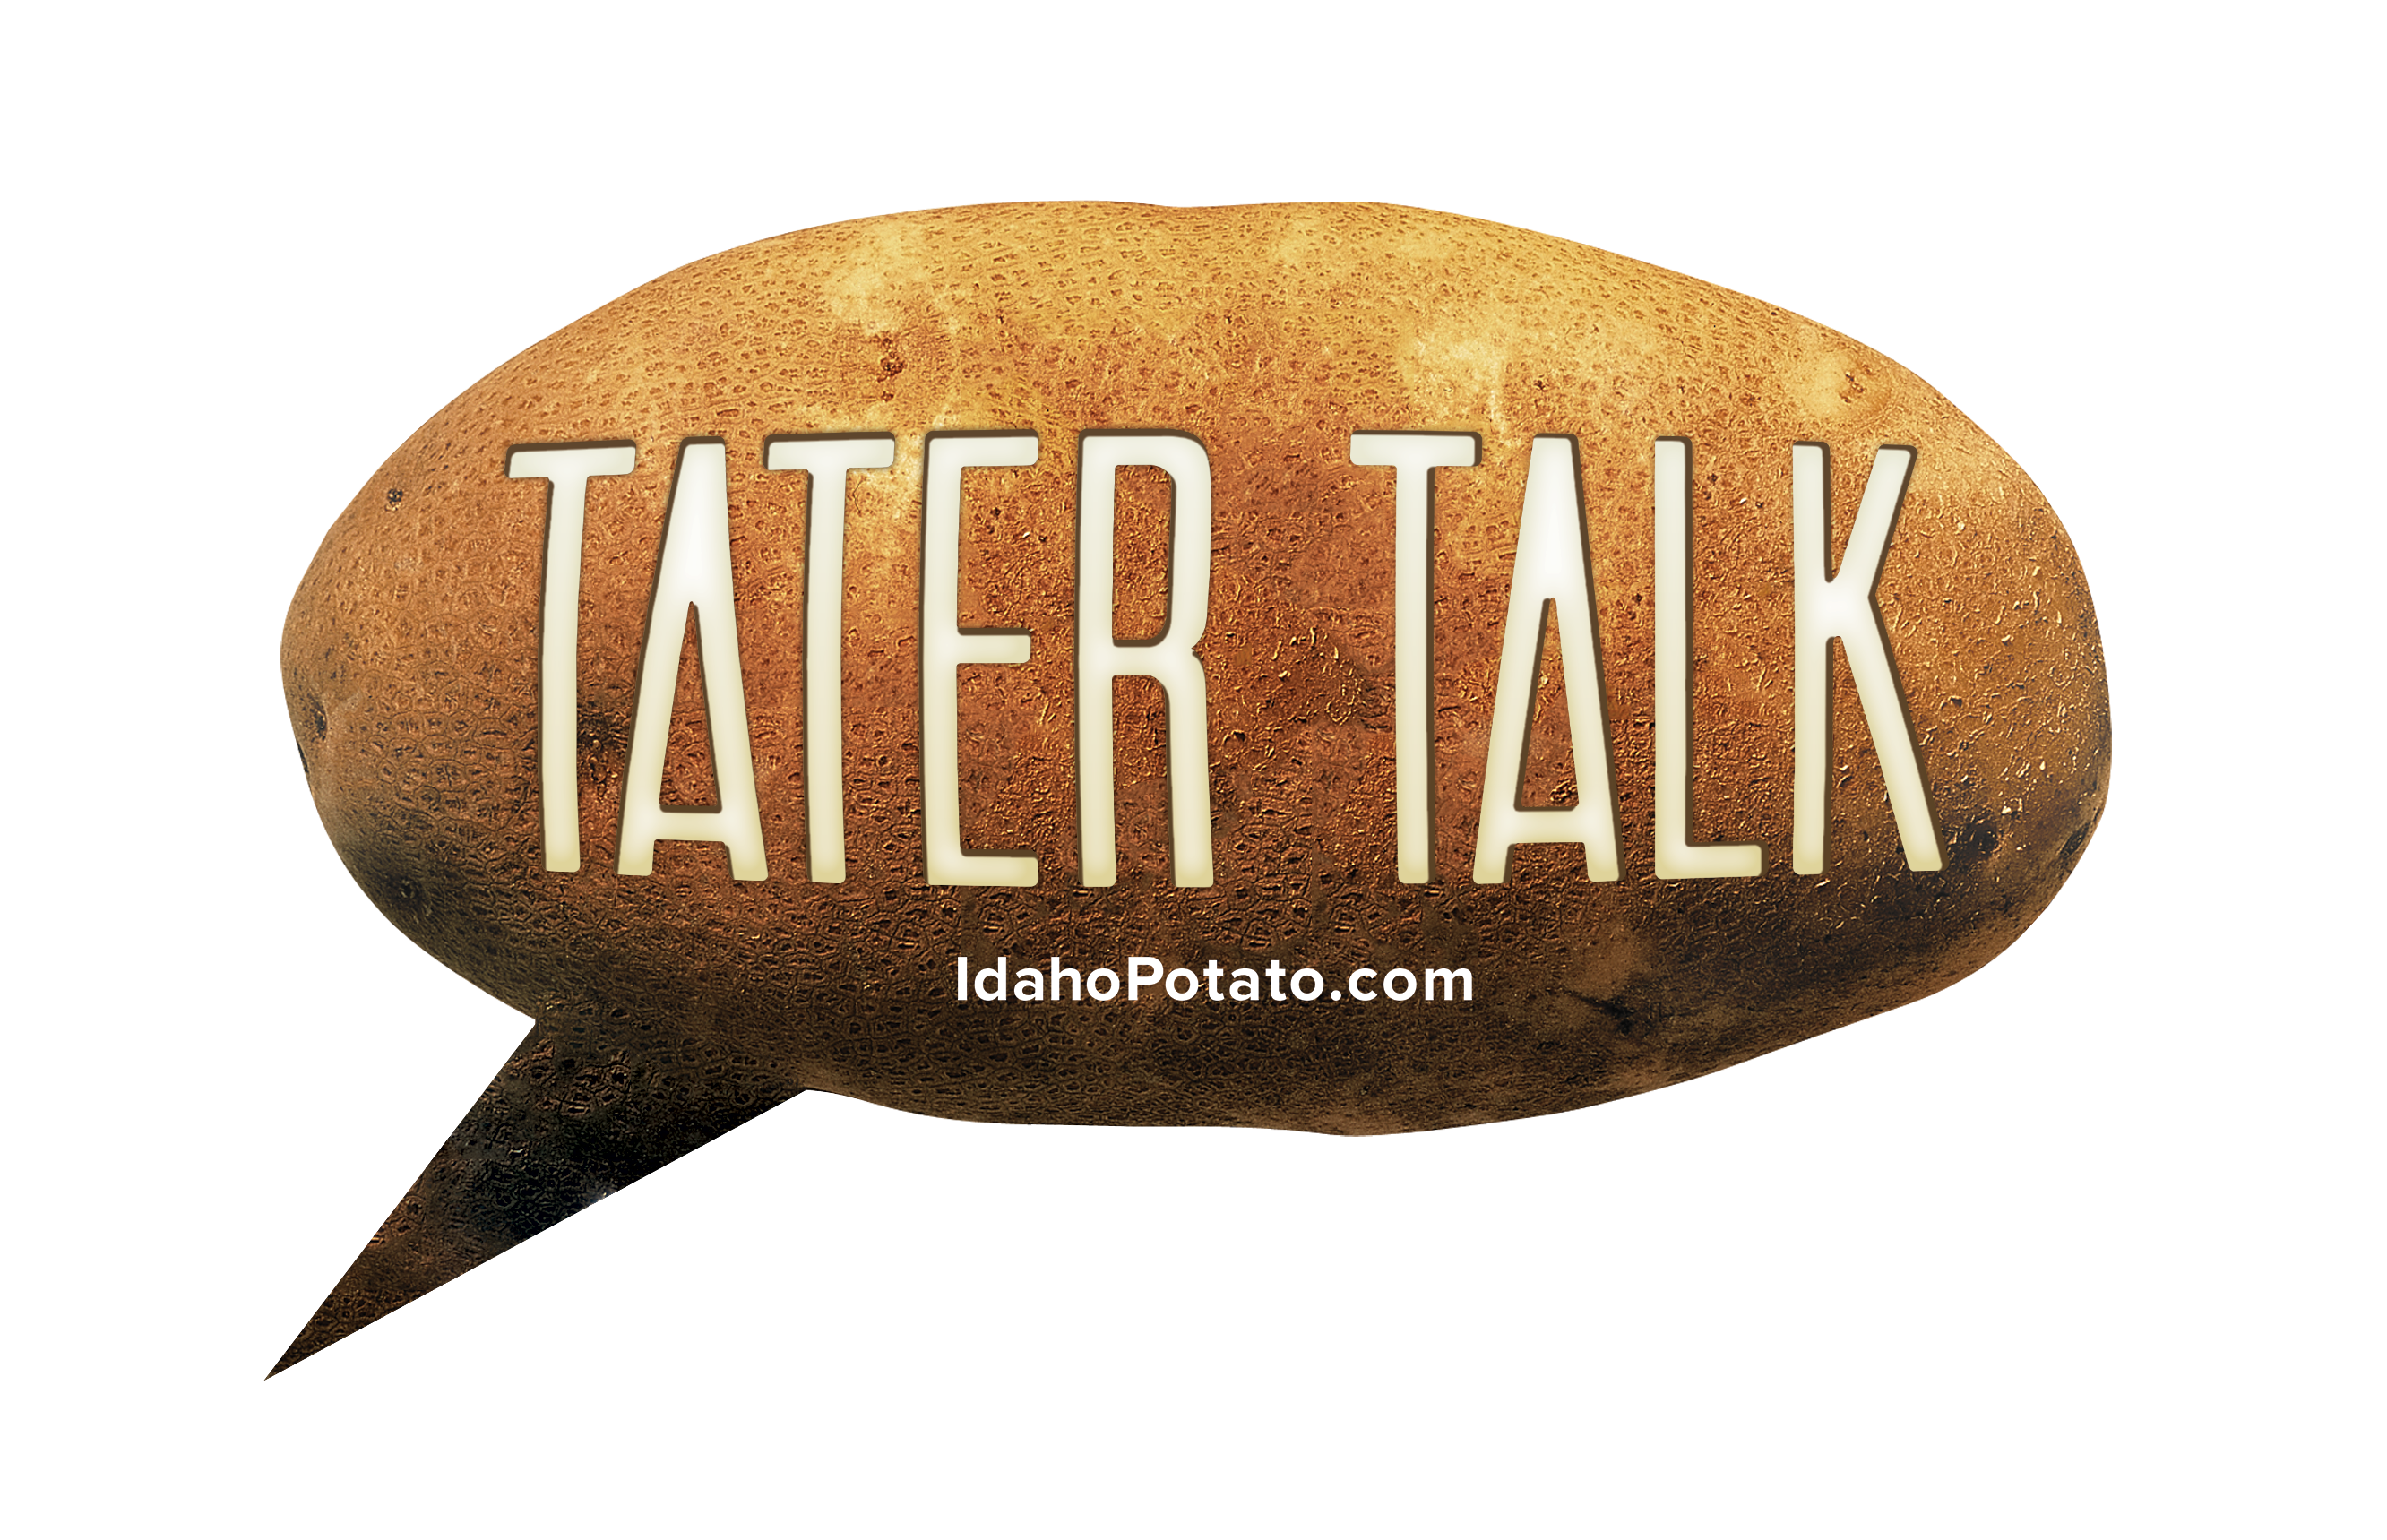 Tater Talk August 2016: Back To School!